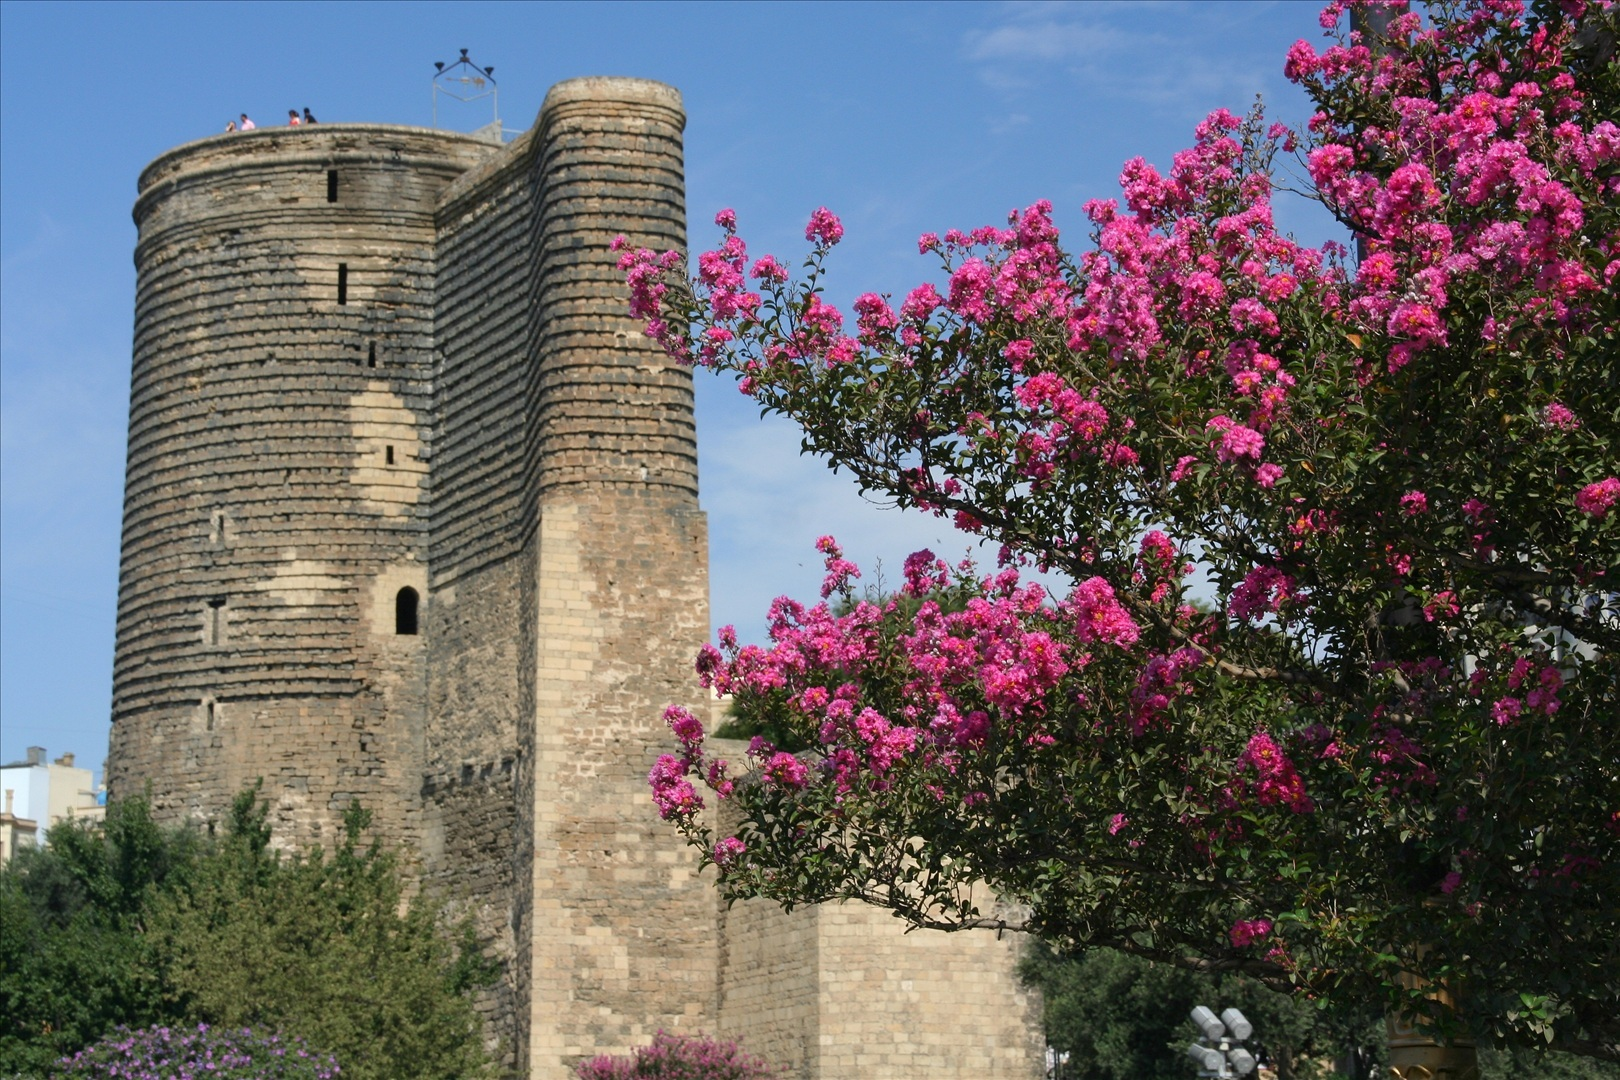 maiden_tower___baku___azerbaijan__6_